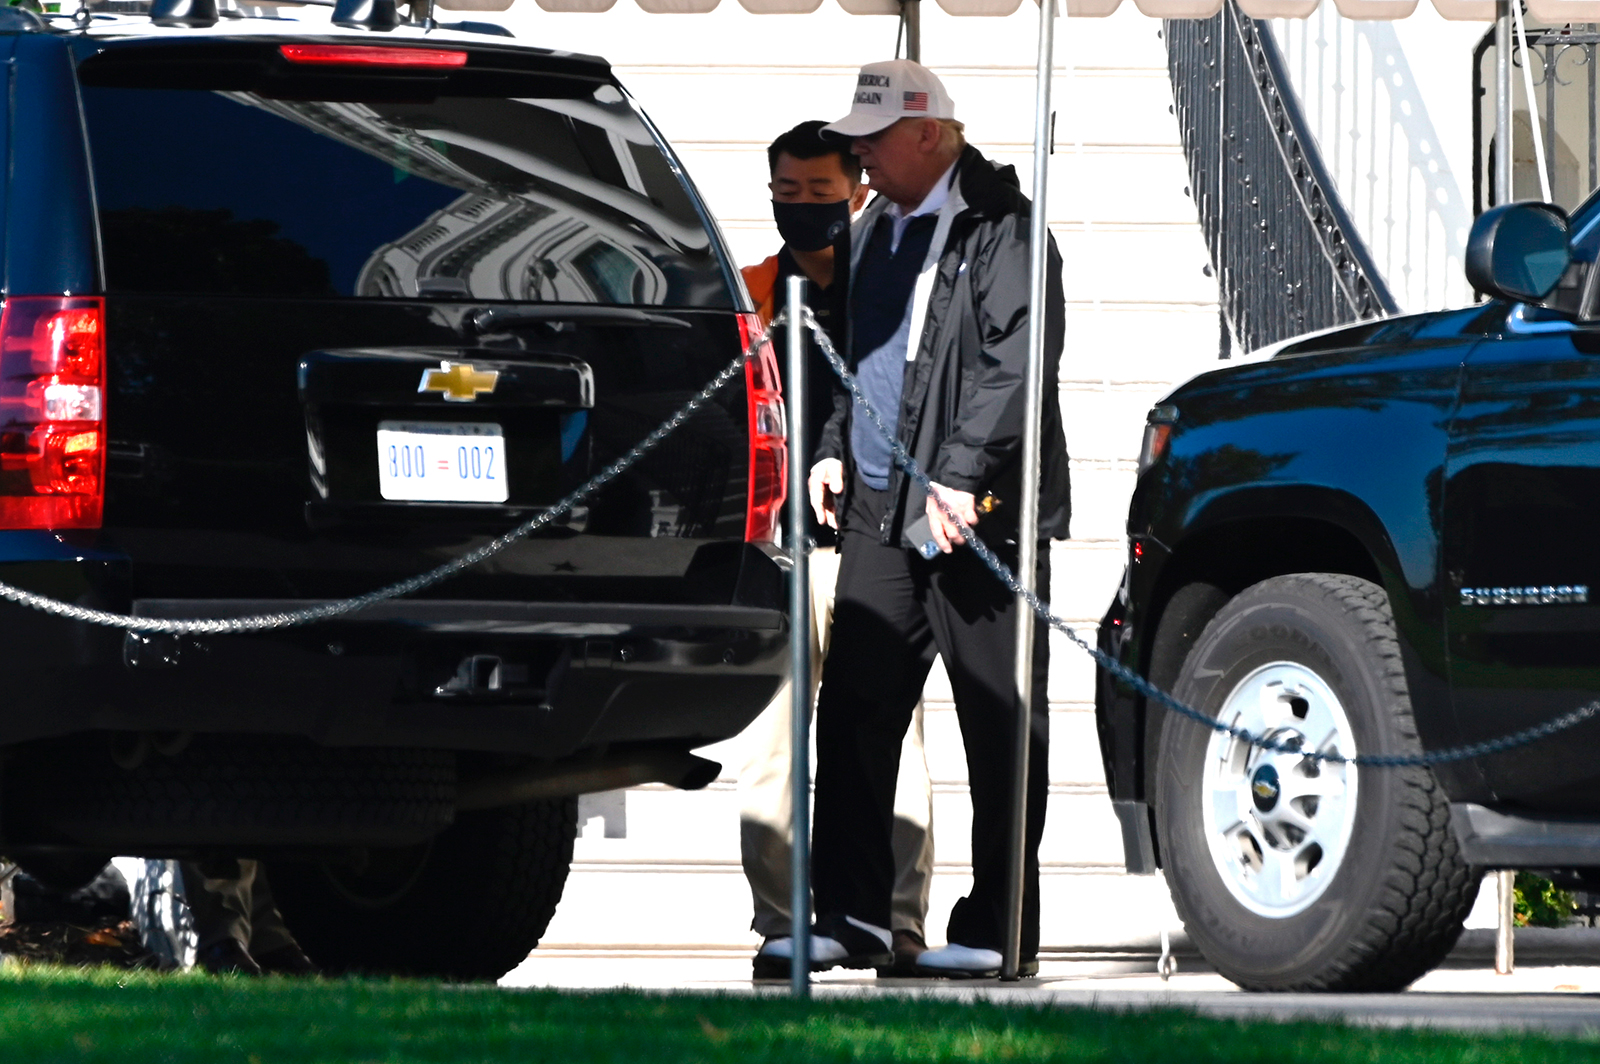 President Donald Trump walks to the motorcade on the South Lawn of the White House in Washington, DC, on November 7.